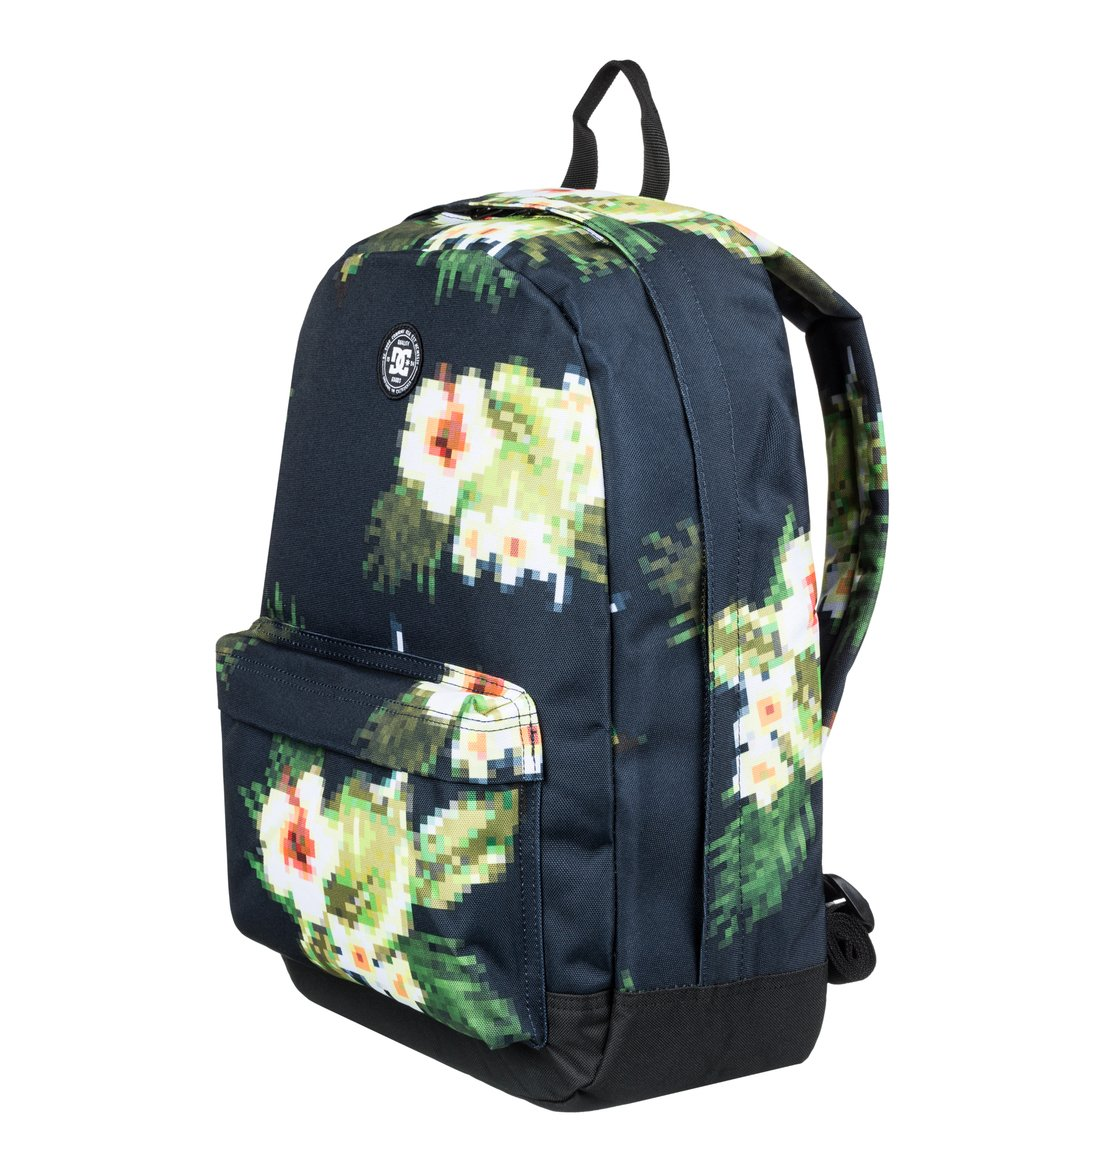 Dc Mediana 1 Shoes Mochila Edybp03156 Backstack xIBBqCF